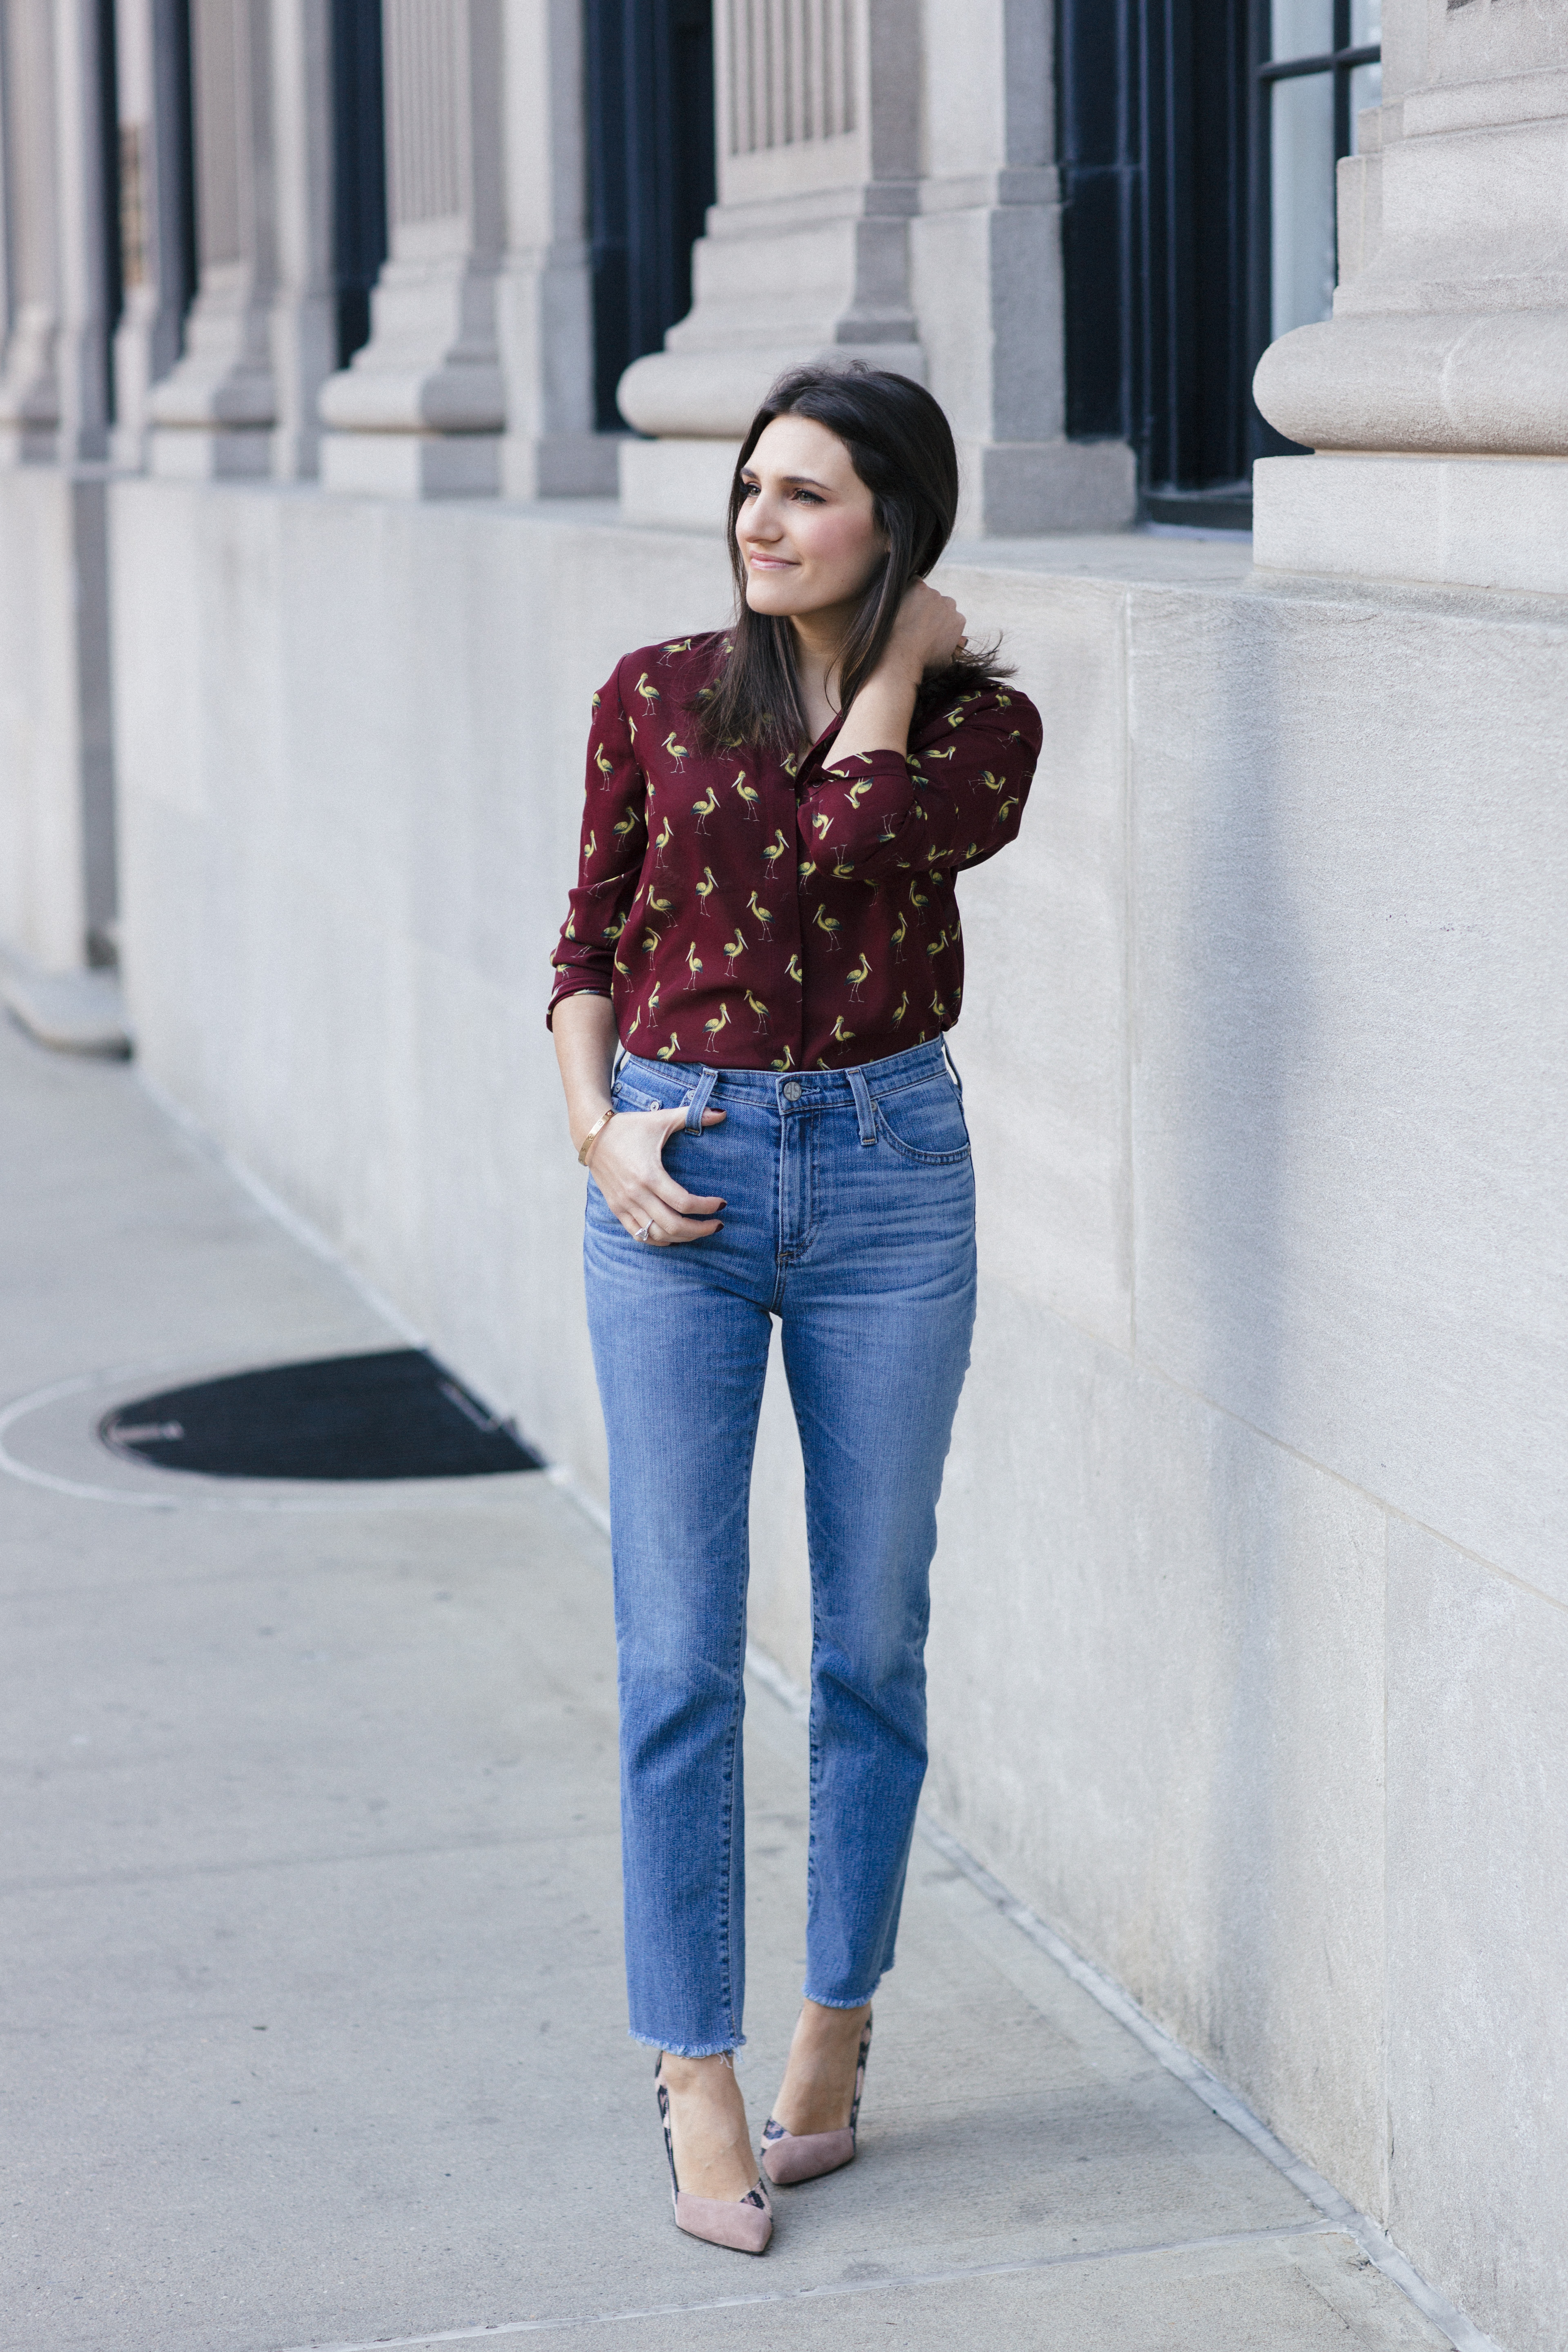 Amanda Warsavsky wearing an Alice and Olivia blouse, AG jeans and Sergio Rossi pumps discusisng challenges with fertility treatments